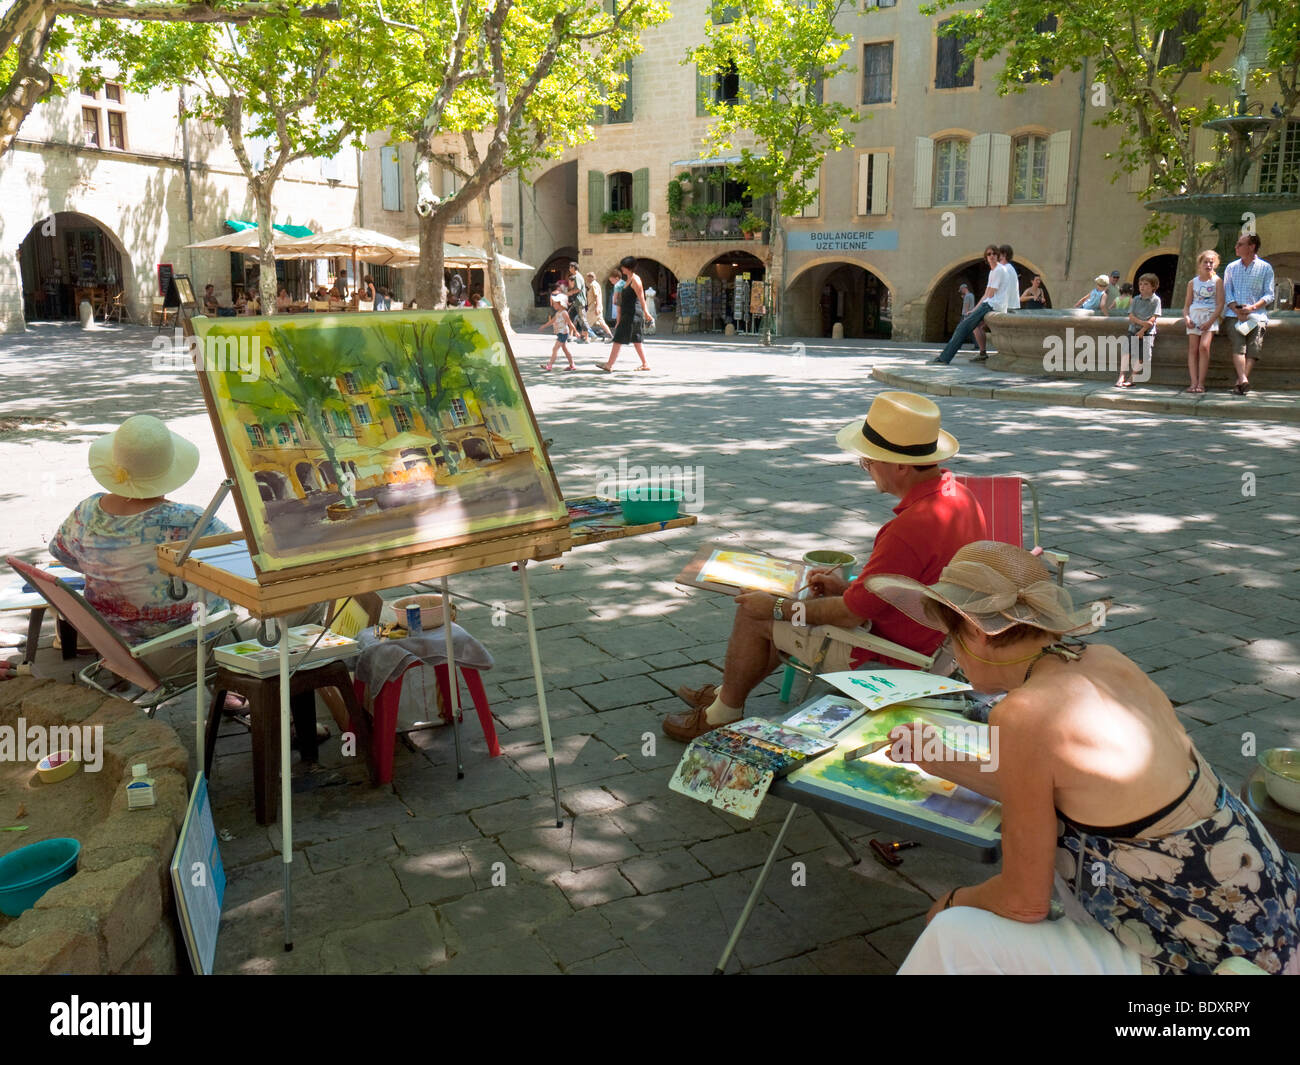 Hobby painters work on the central square Place aux Herbes at Uzès, southern France. - Stock Image